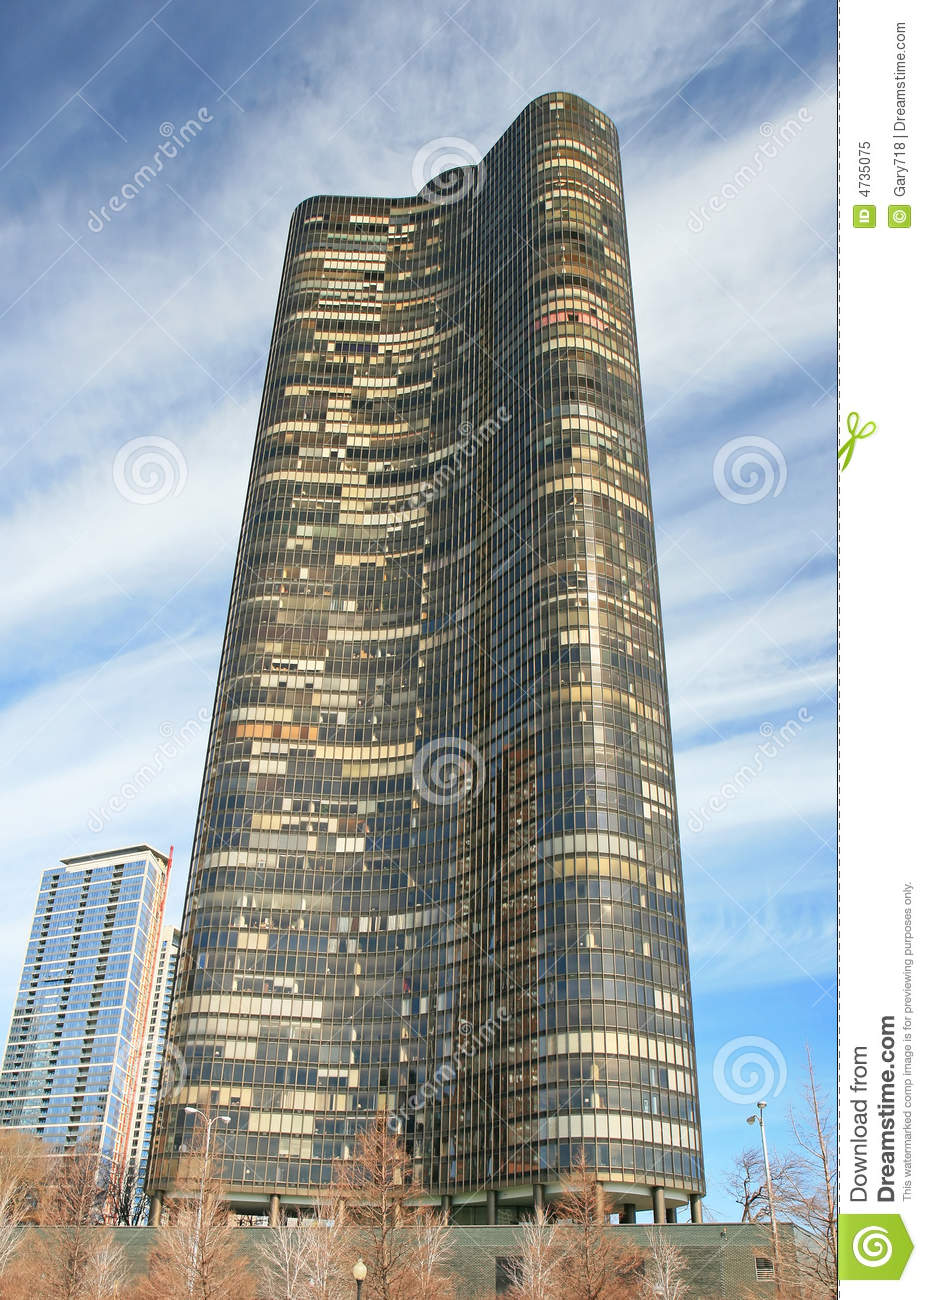 Chicago High Fashion Editorial: The High-rise Buildings In Chicago Stock Image